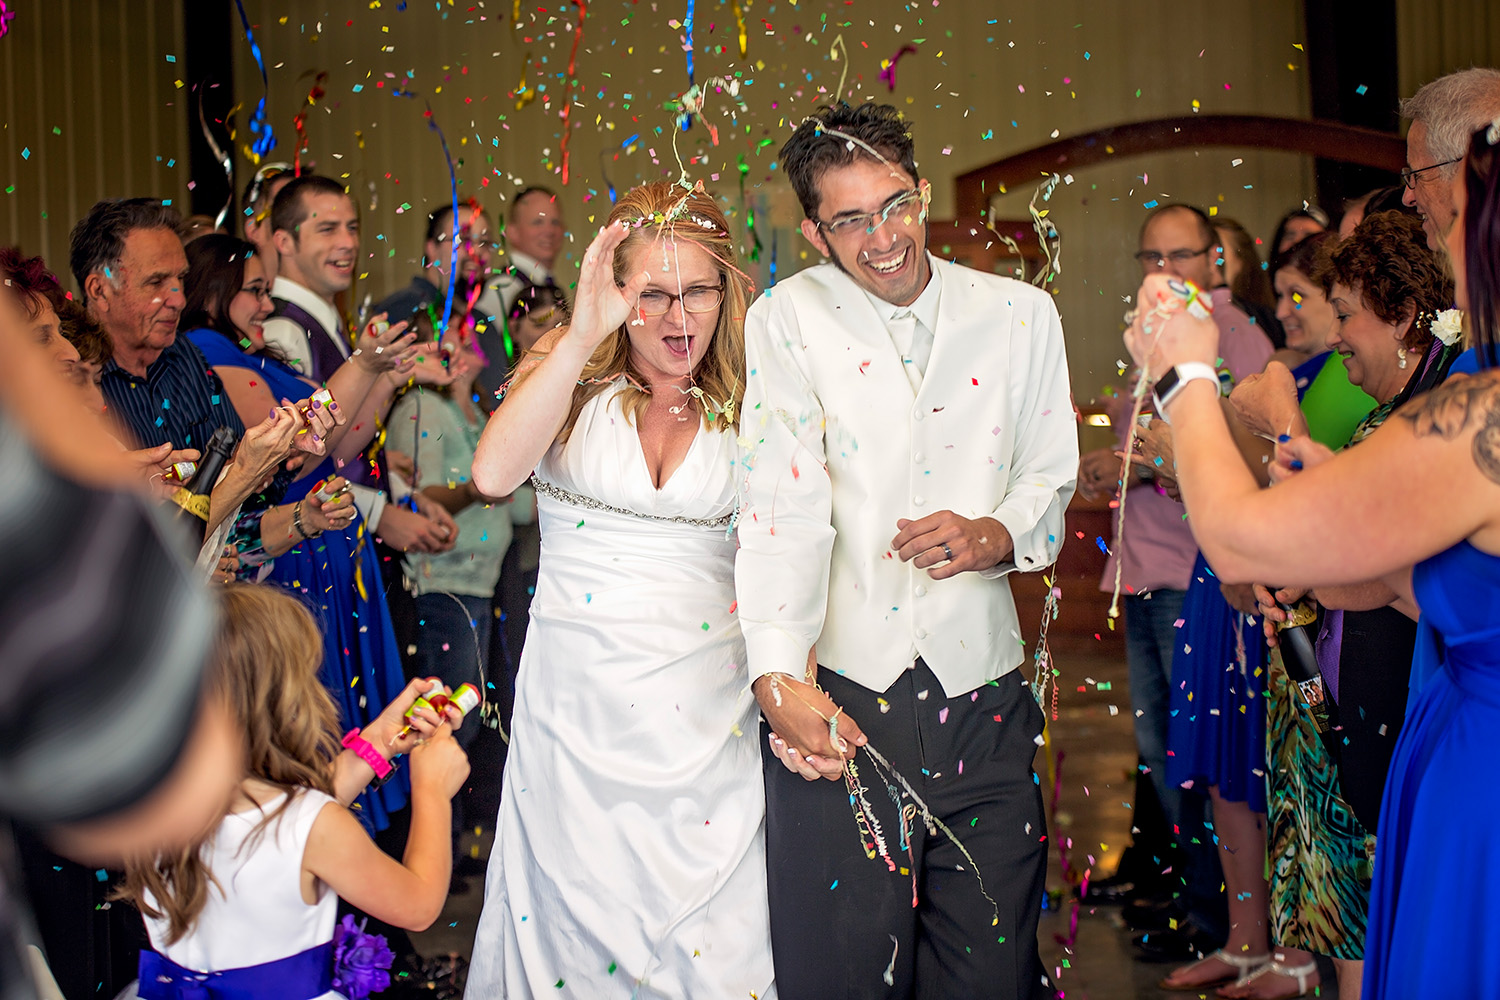 Confetti bride and groom send off, Springfield Missouri Wedding